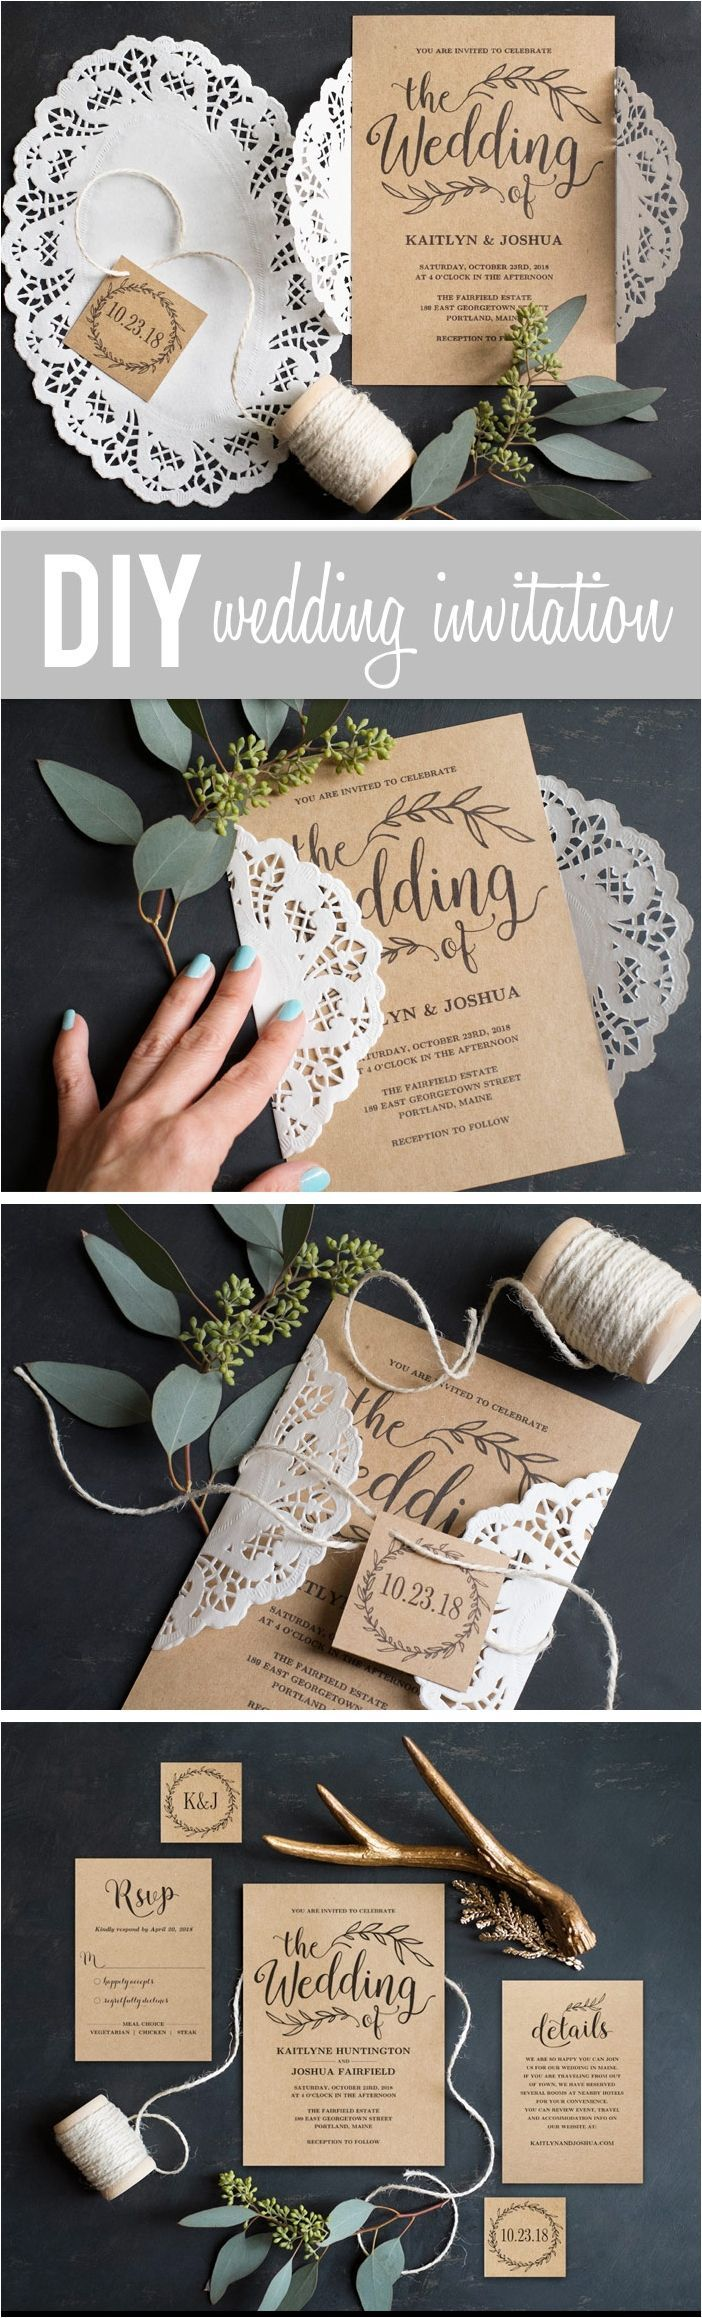 wedding card manufacturers in tamilnadu%0A Rustic Wedding Invitation Inspiration For Your Rustic Wedding  https   bridalore com